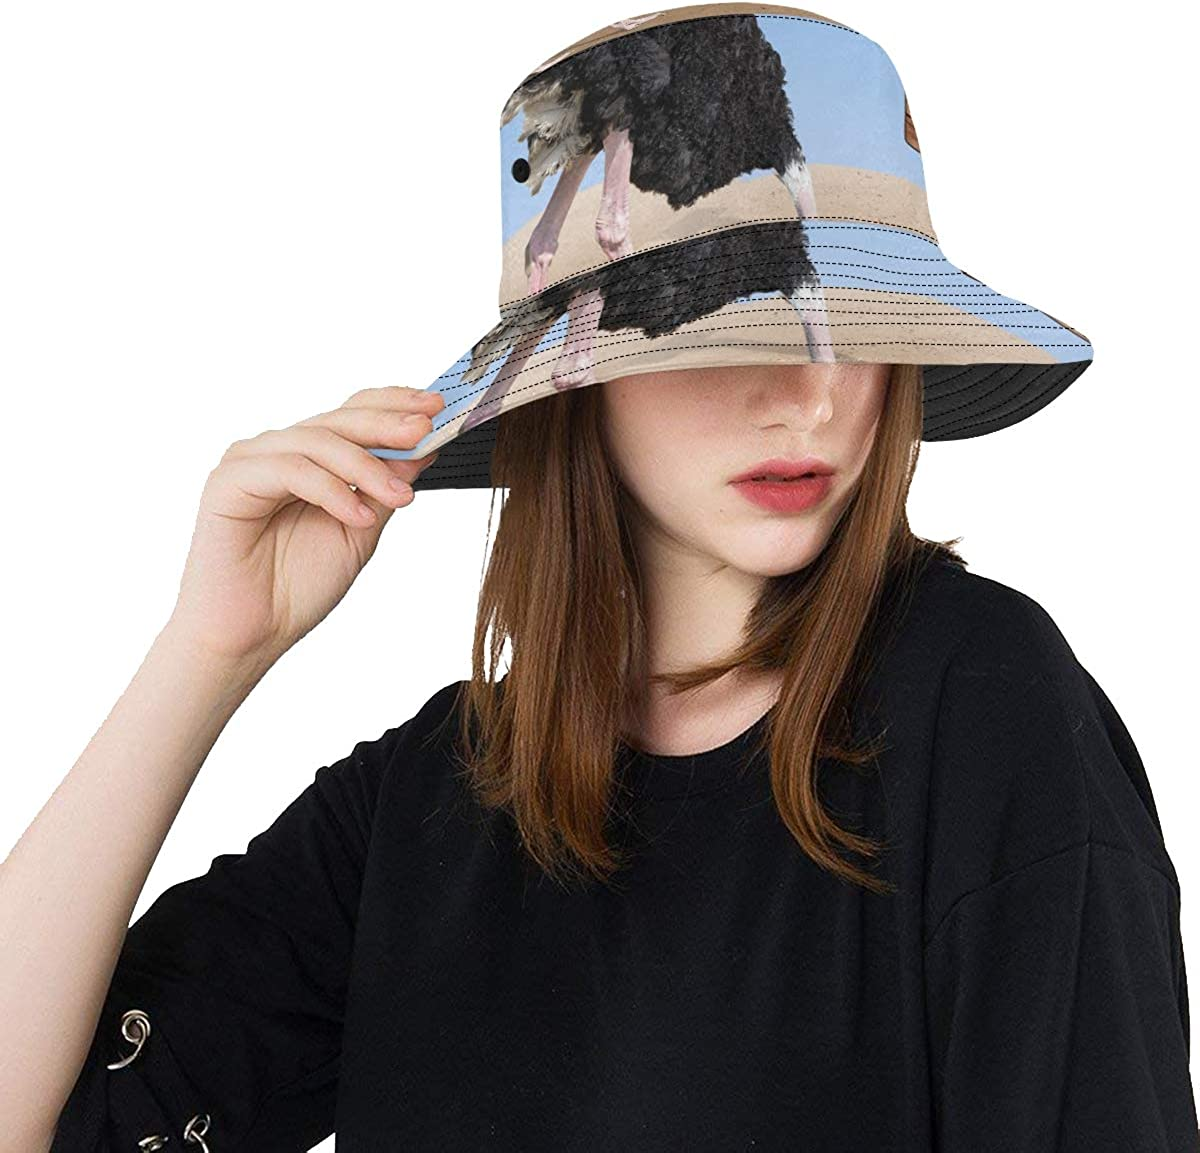 Lonely Fisherman Fishing at Sunset New Summer Unisex Cotton Fashion Fishing Sun Bucket Hats for Kid Teens Women and Men with Customize Top Packable Fisherman Cap for Outdoor Travel